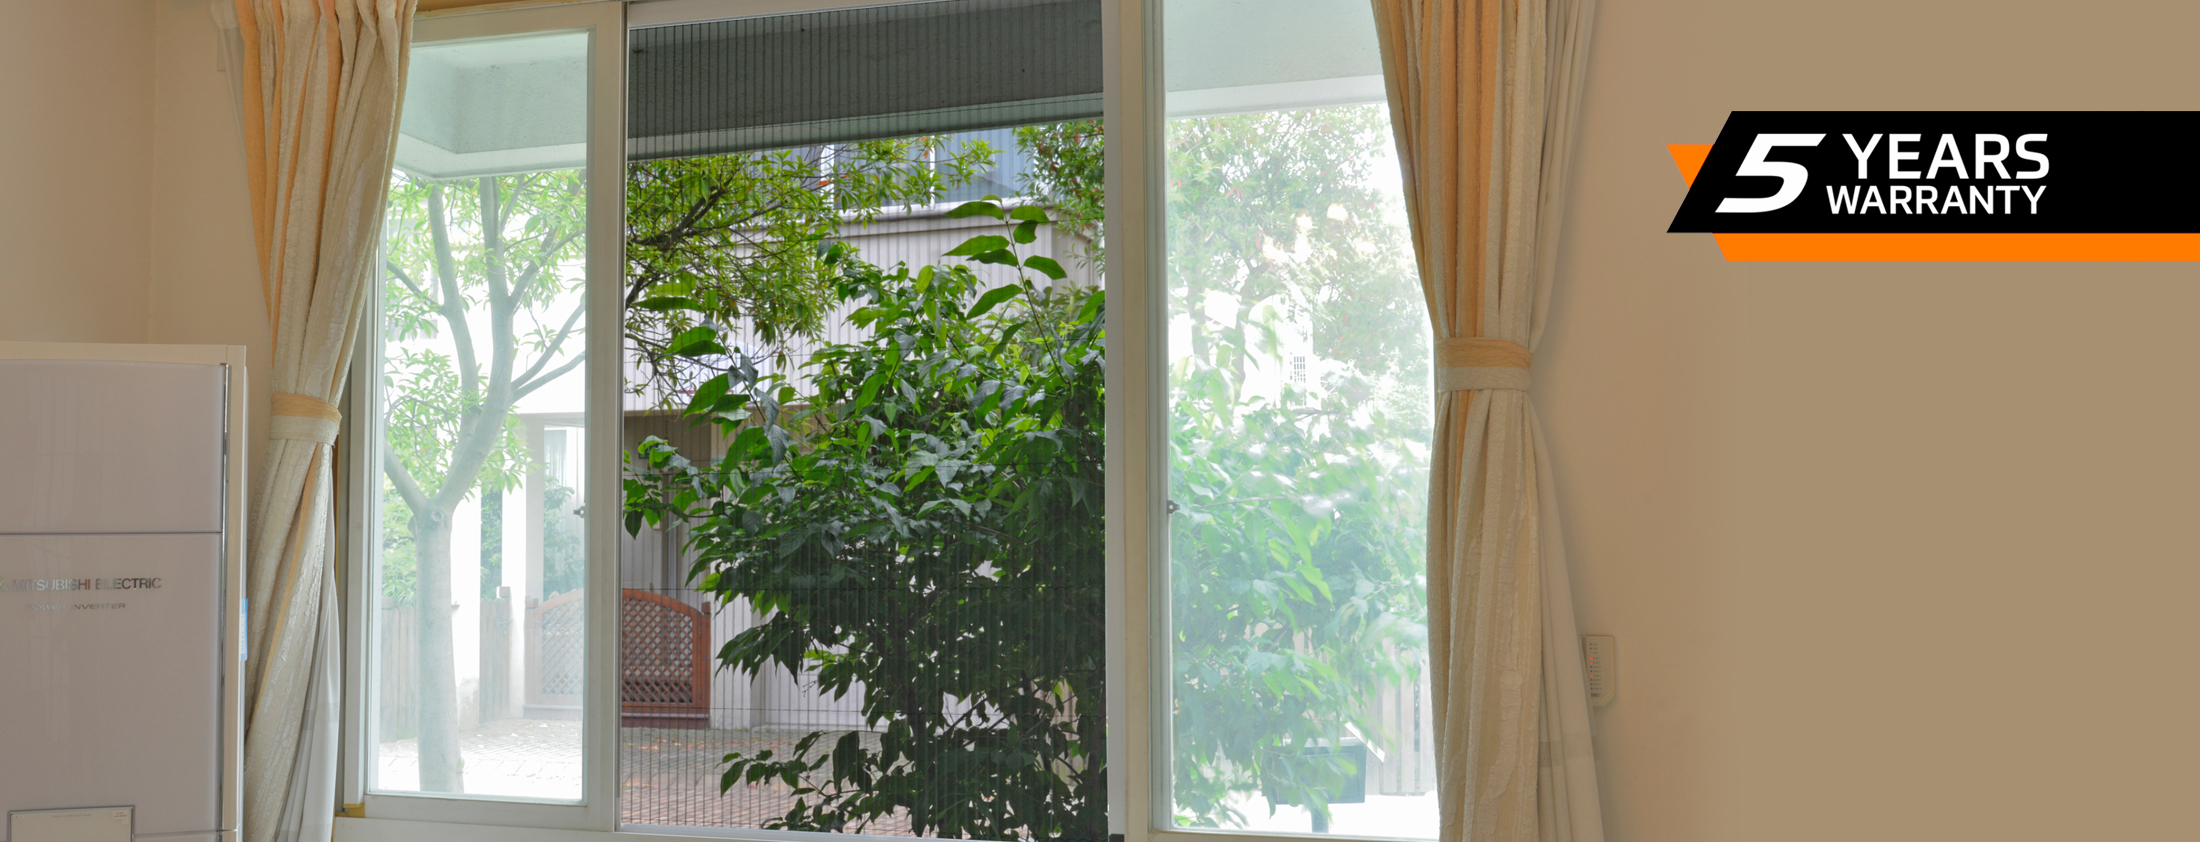 pleated-mosquito-net-for-window